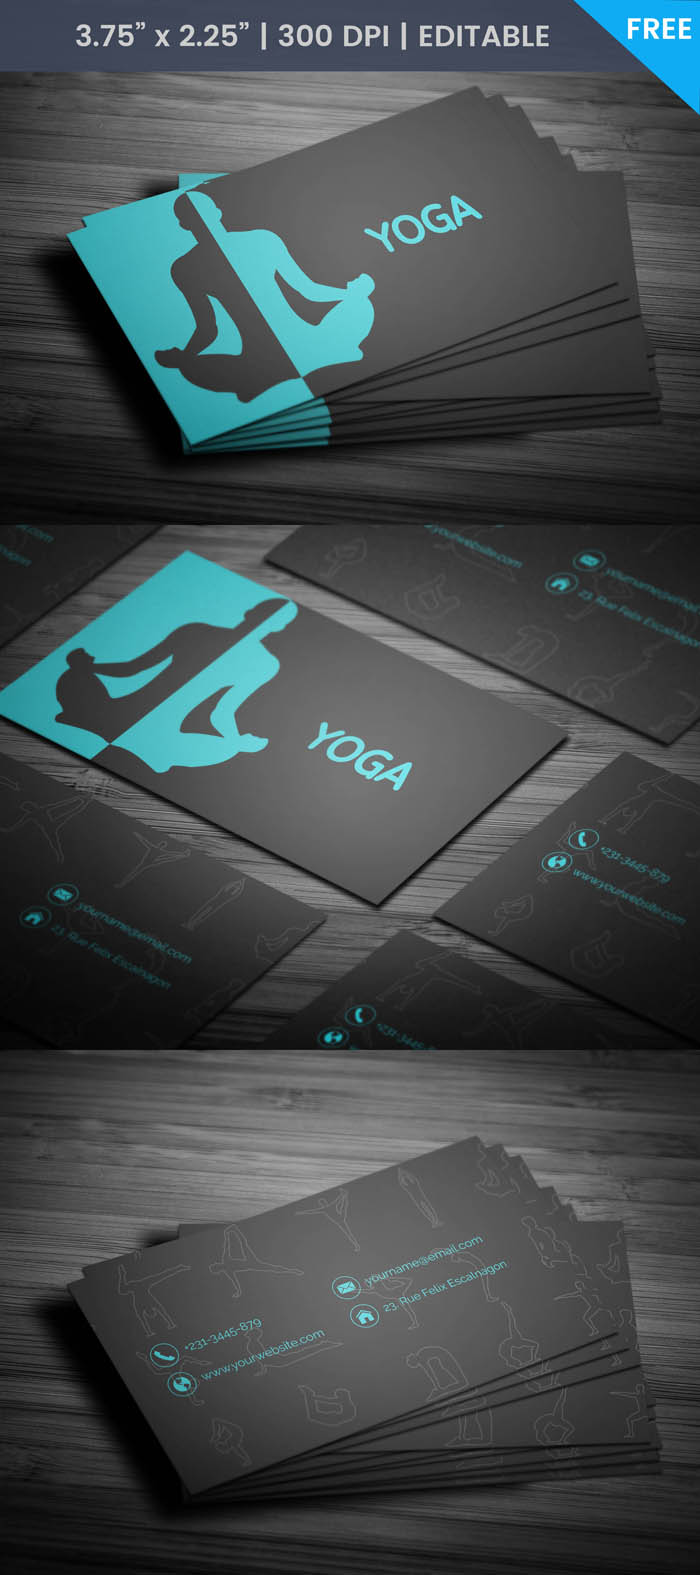 Yoga Instructor Business Card - Full Preview